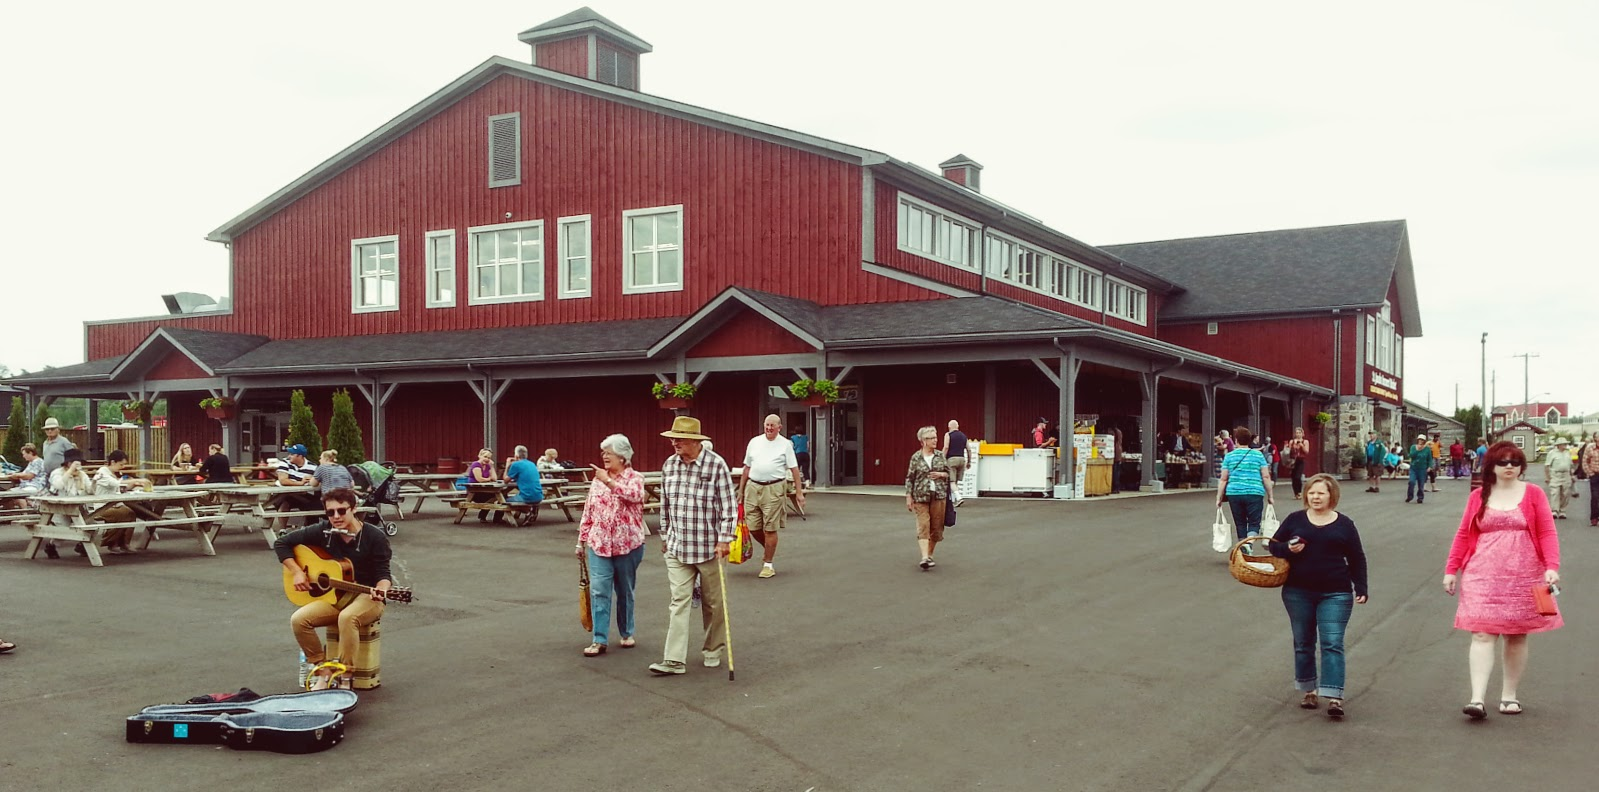 The new barn at St. Jacobs Farmers Market